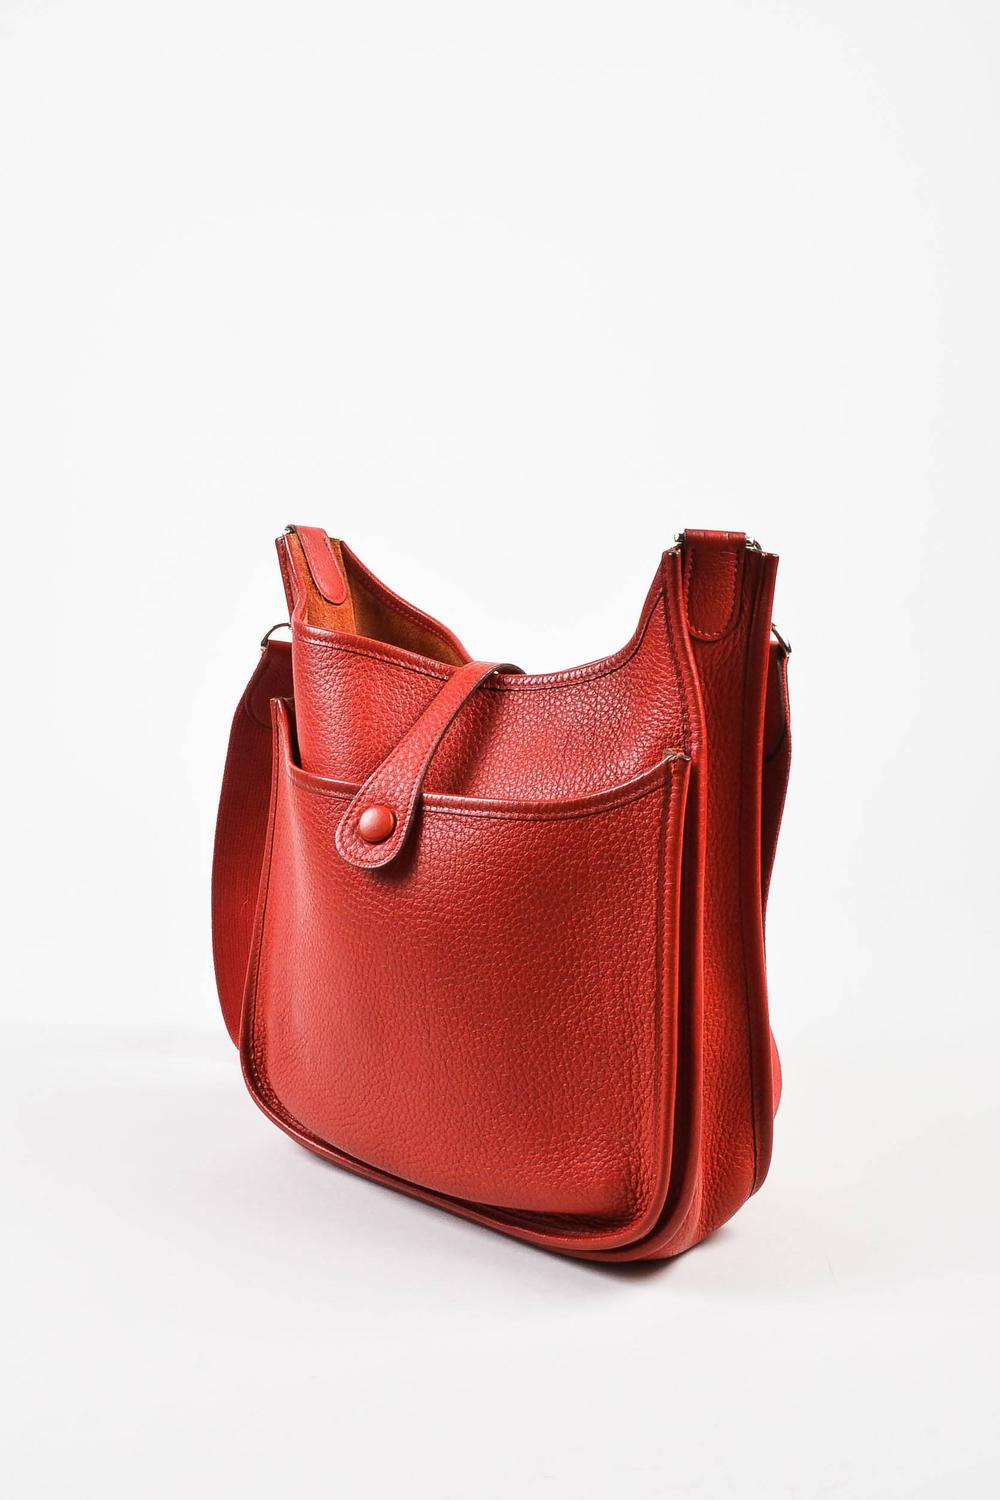 cheap hermes bags online - Hermes Red Clemence Leather Canvas Strap Evelyne II PM Shoulder ...